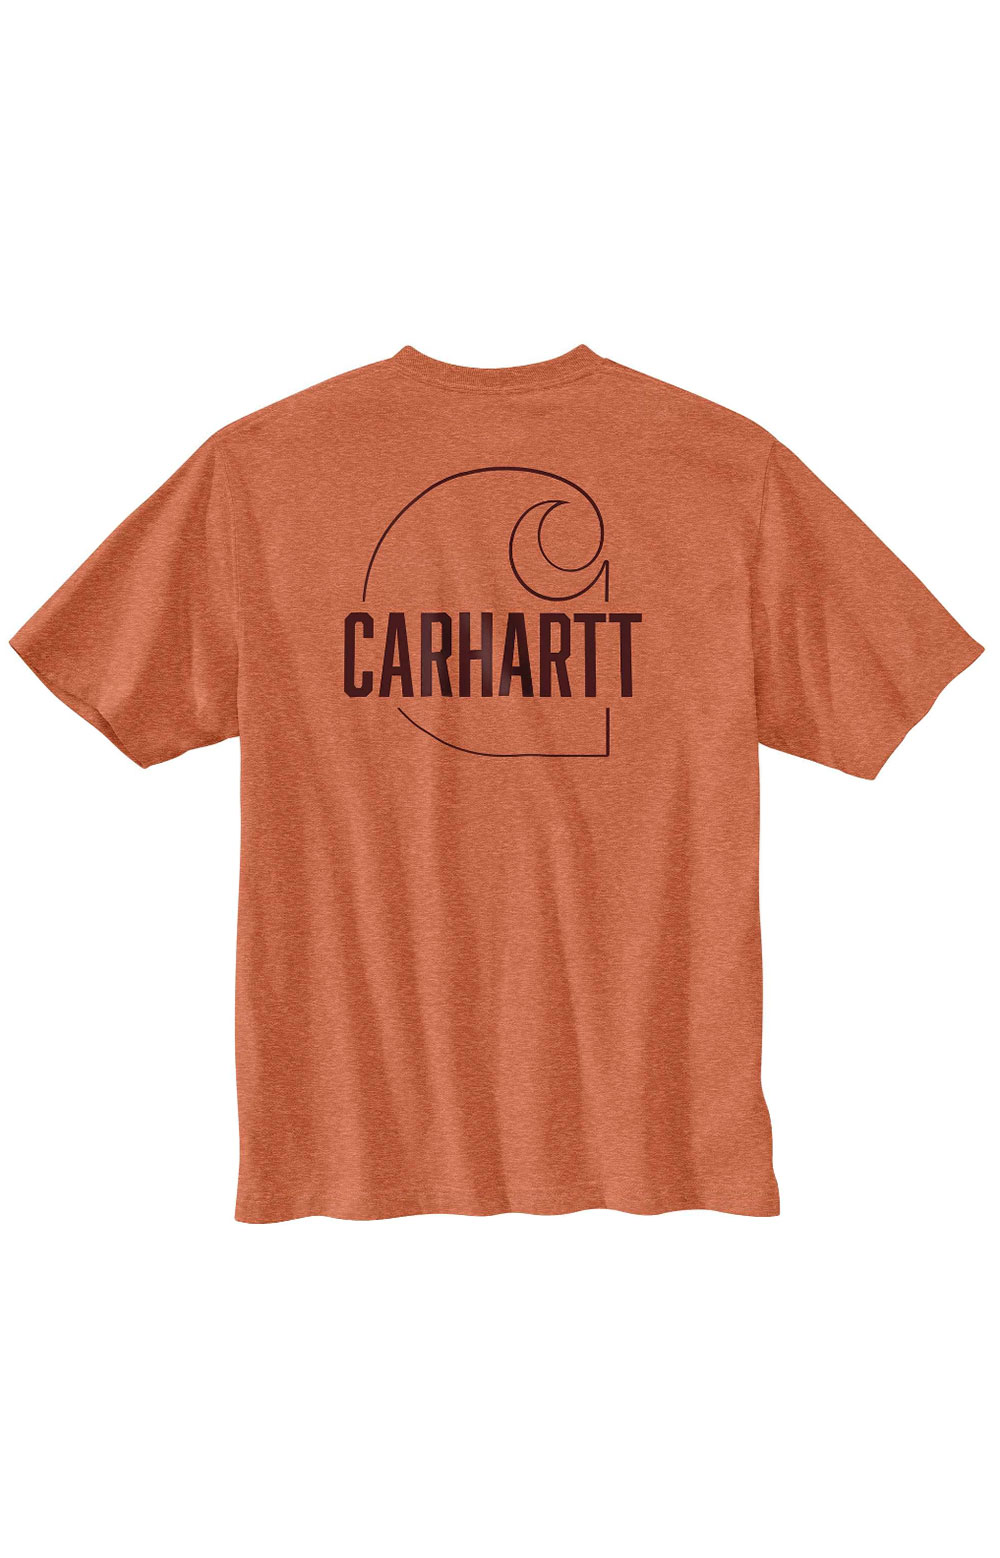 (104611) Loose Fit HW S/S Pocket Carhartt C Graphic T-Shirt - Ginger Heather